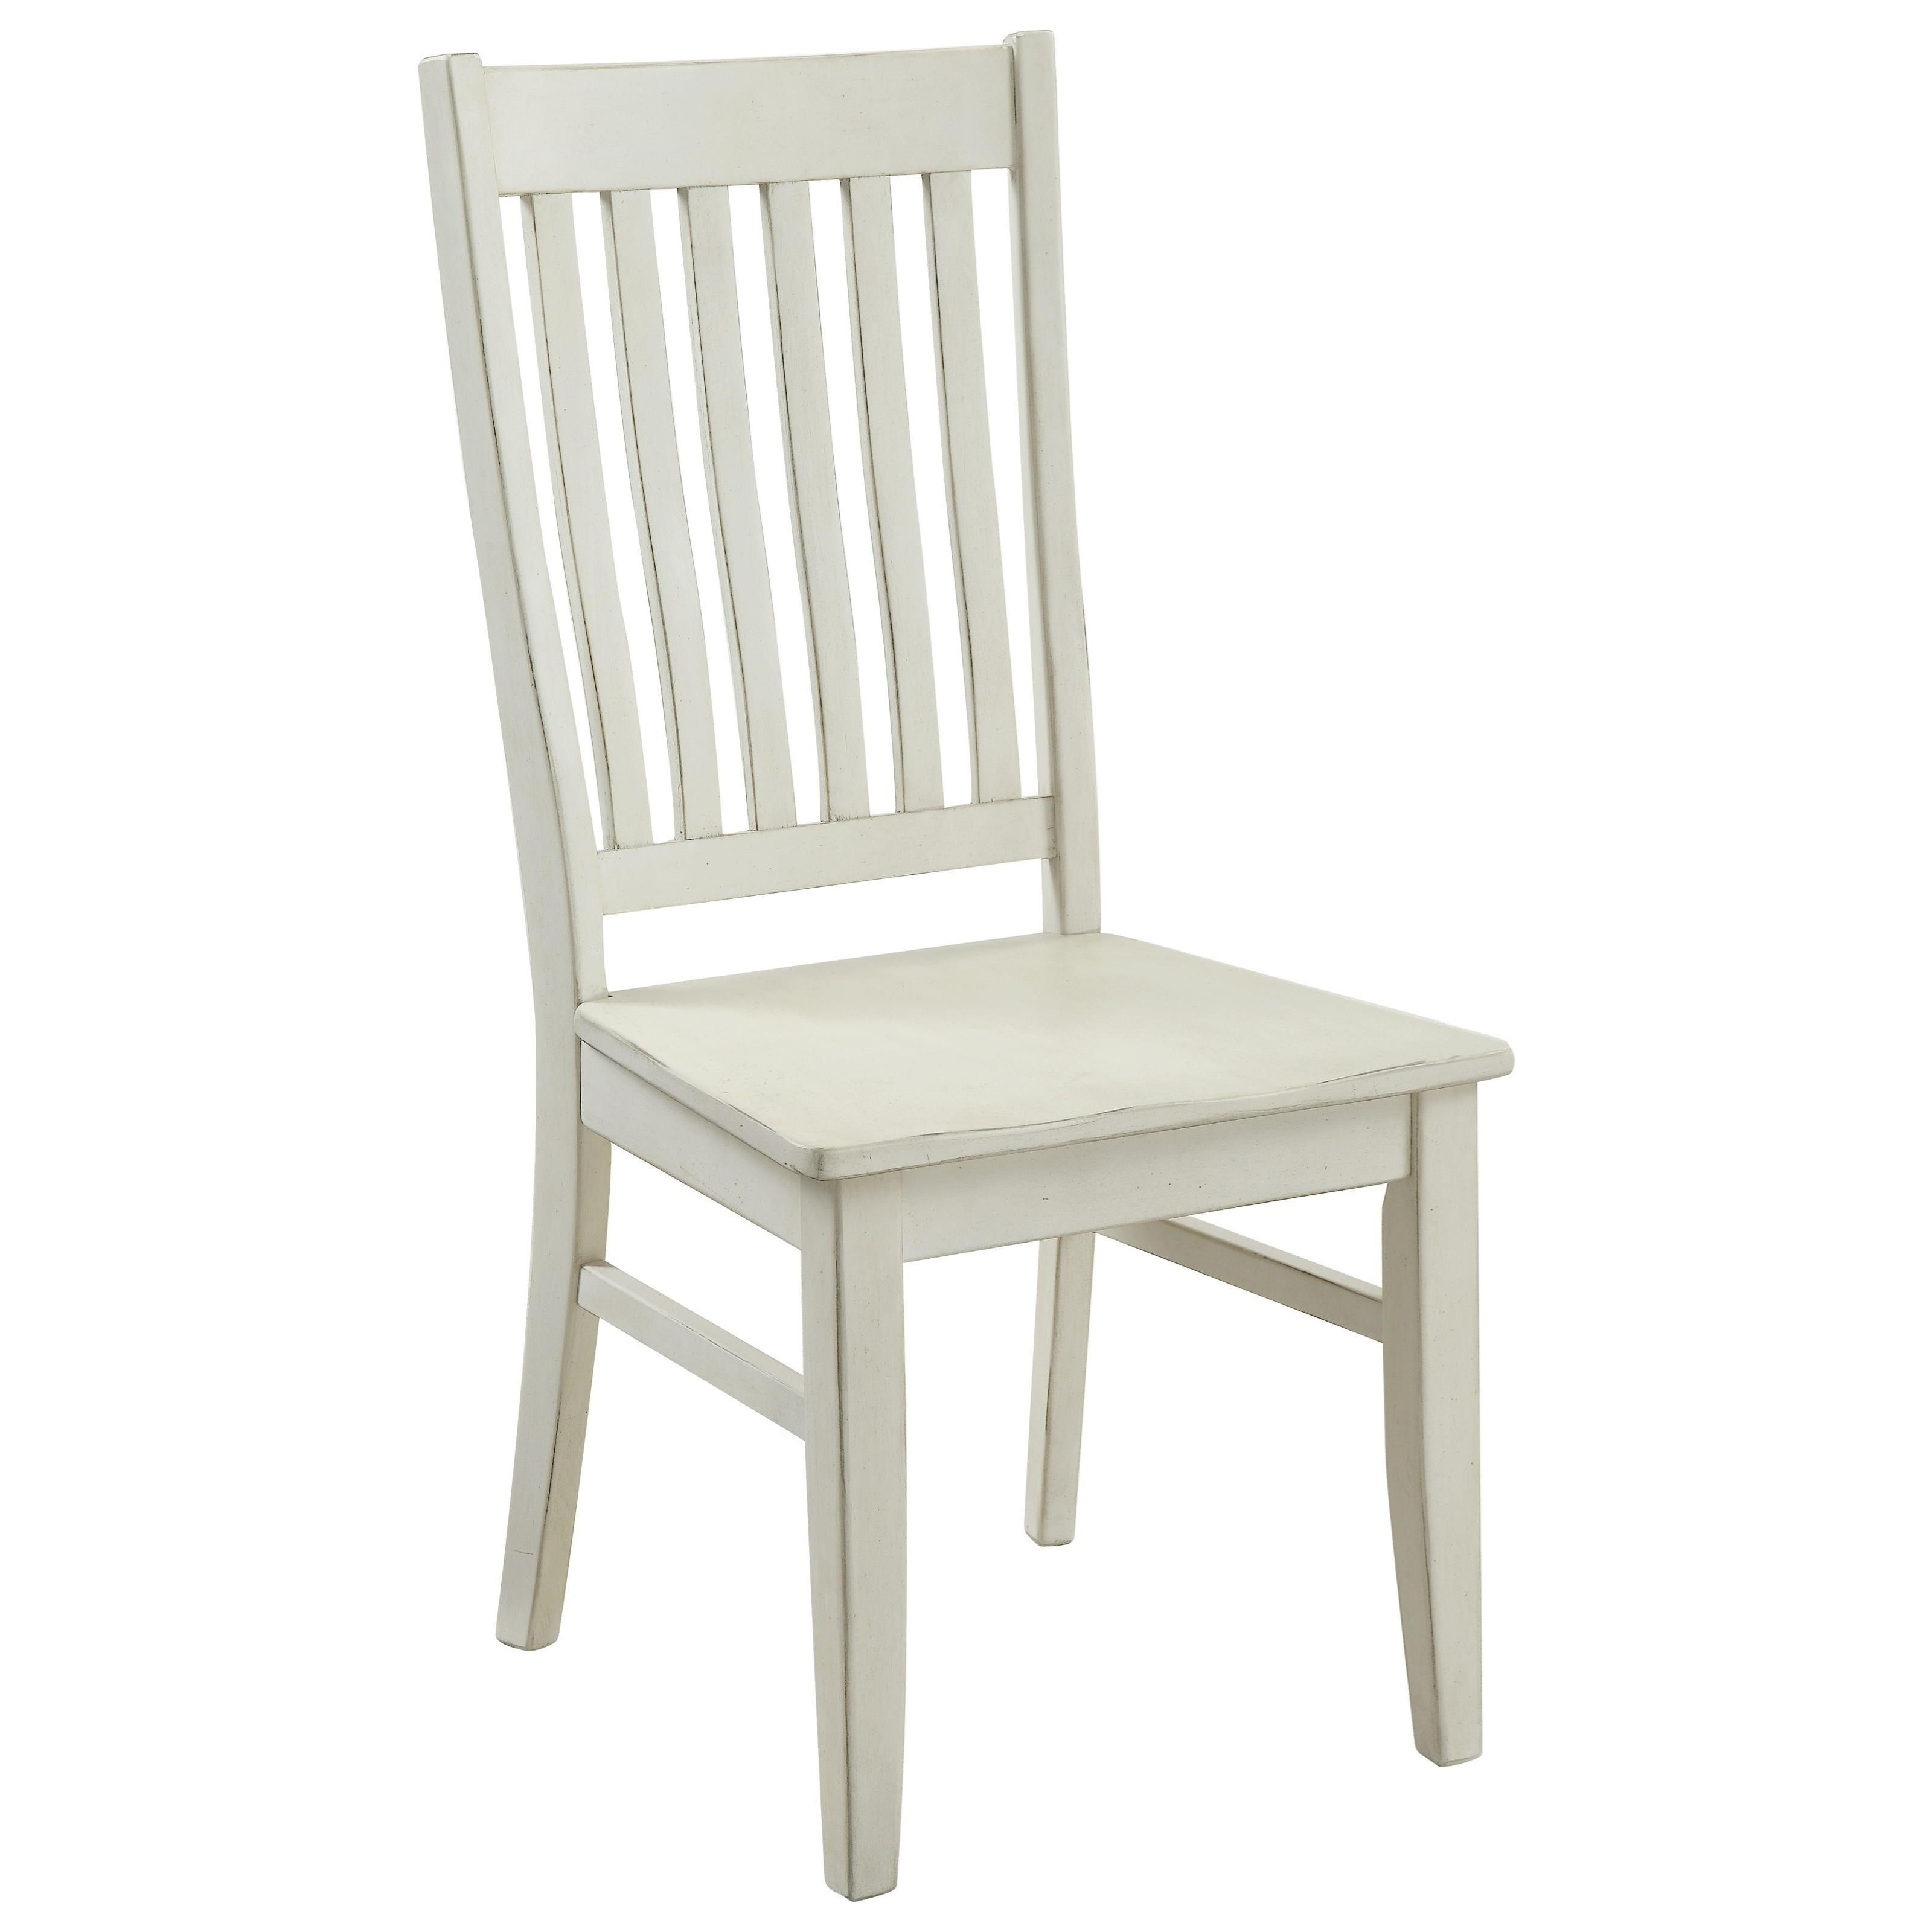 Orchard Park Orchard Park Dining Chair by C2C at Walker's Furniture